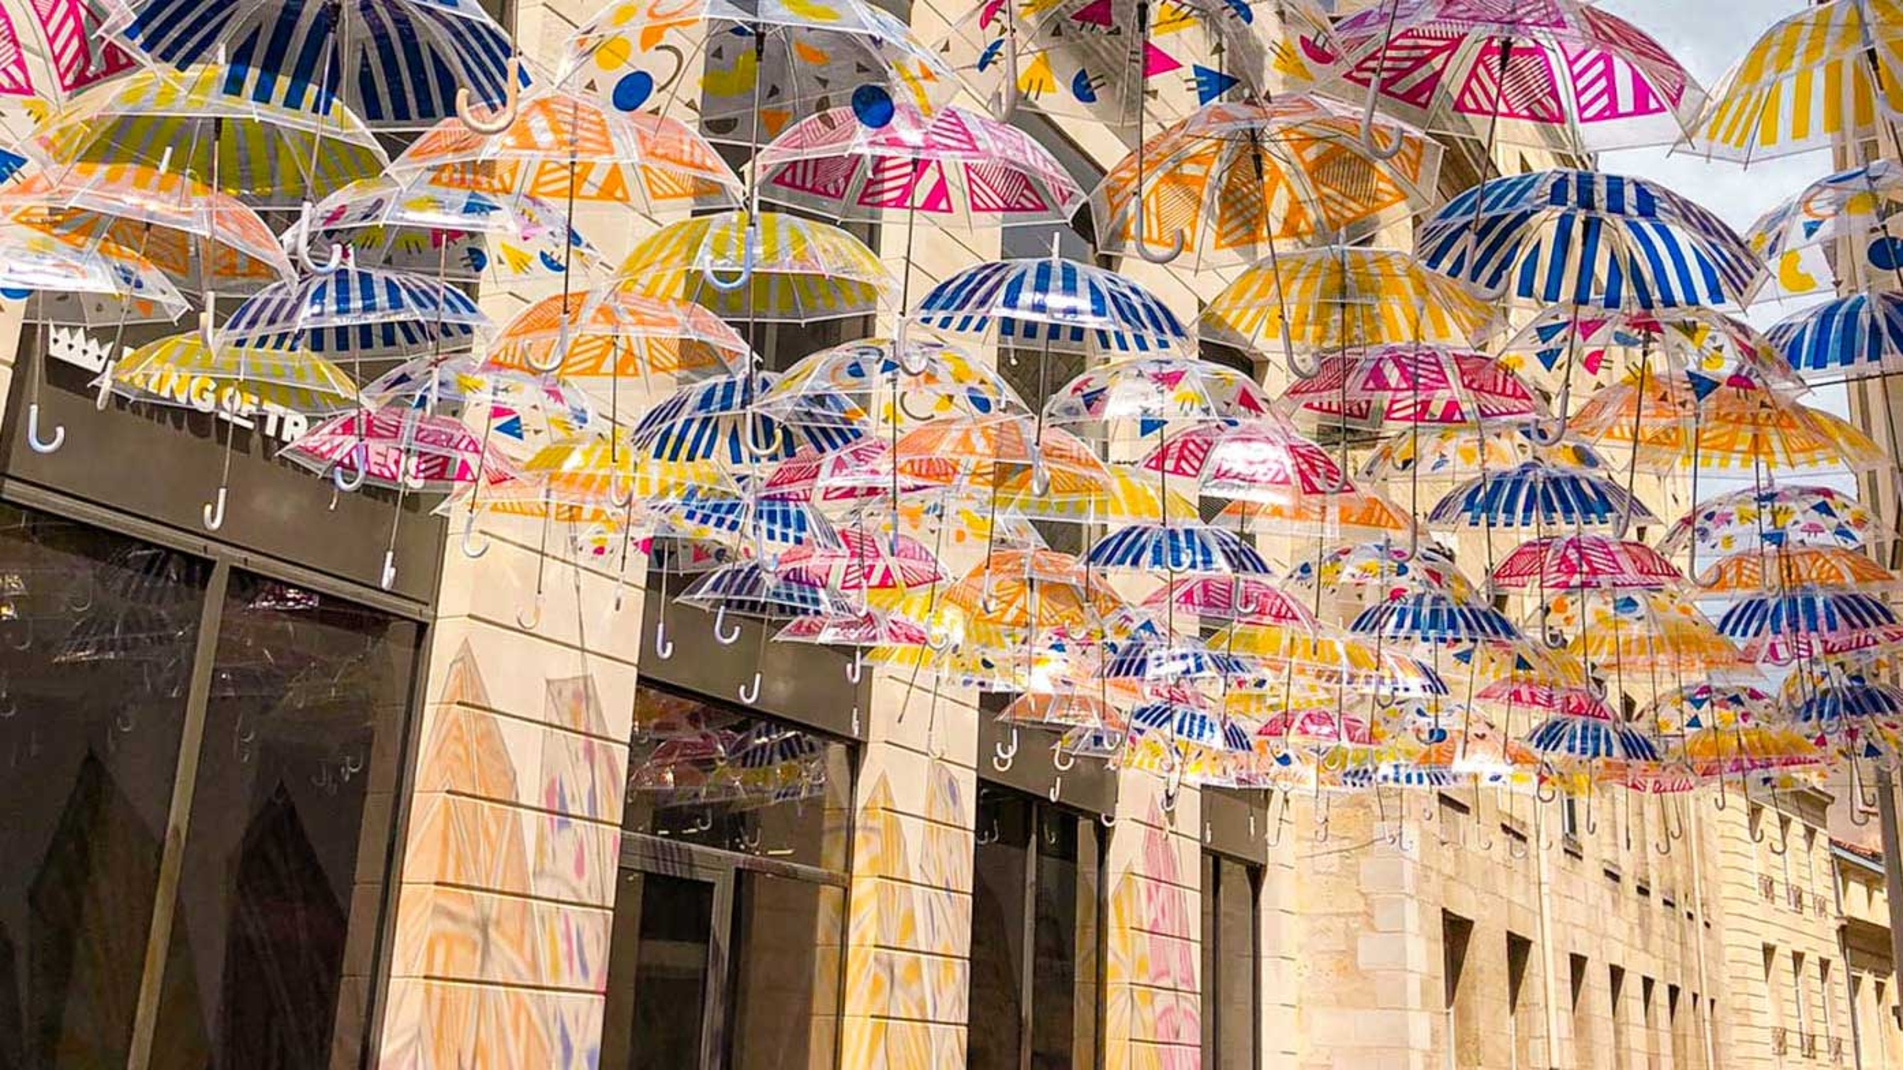 Umbrella Sky Flower Power - Bordeaux'20